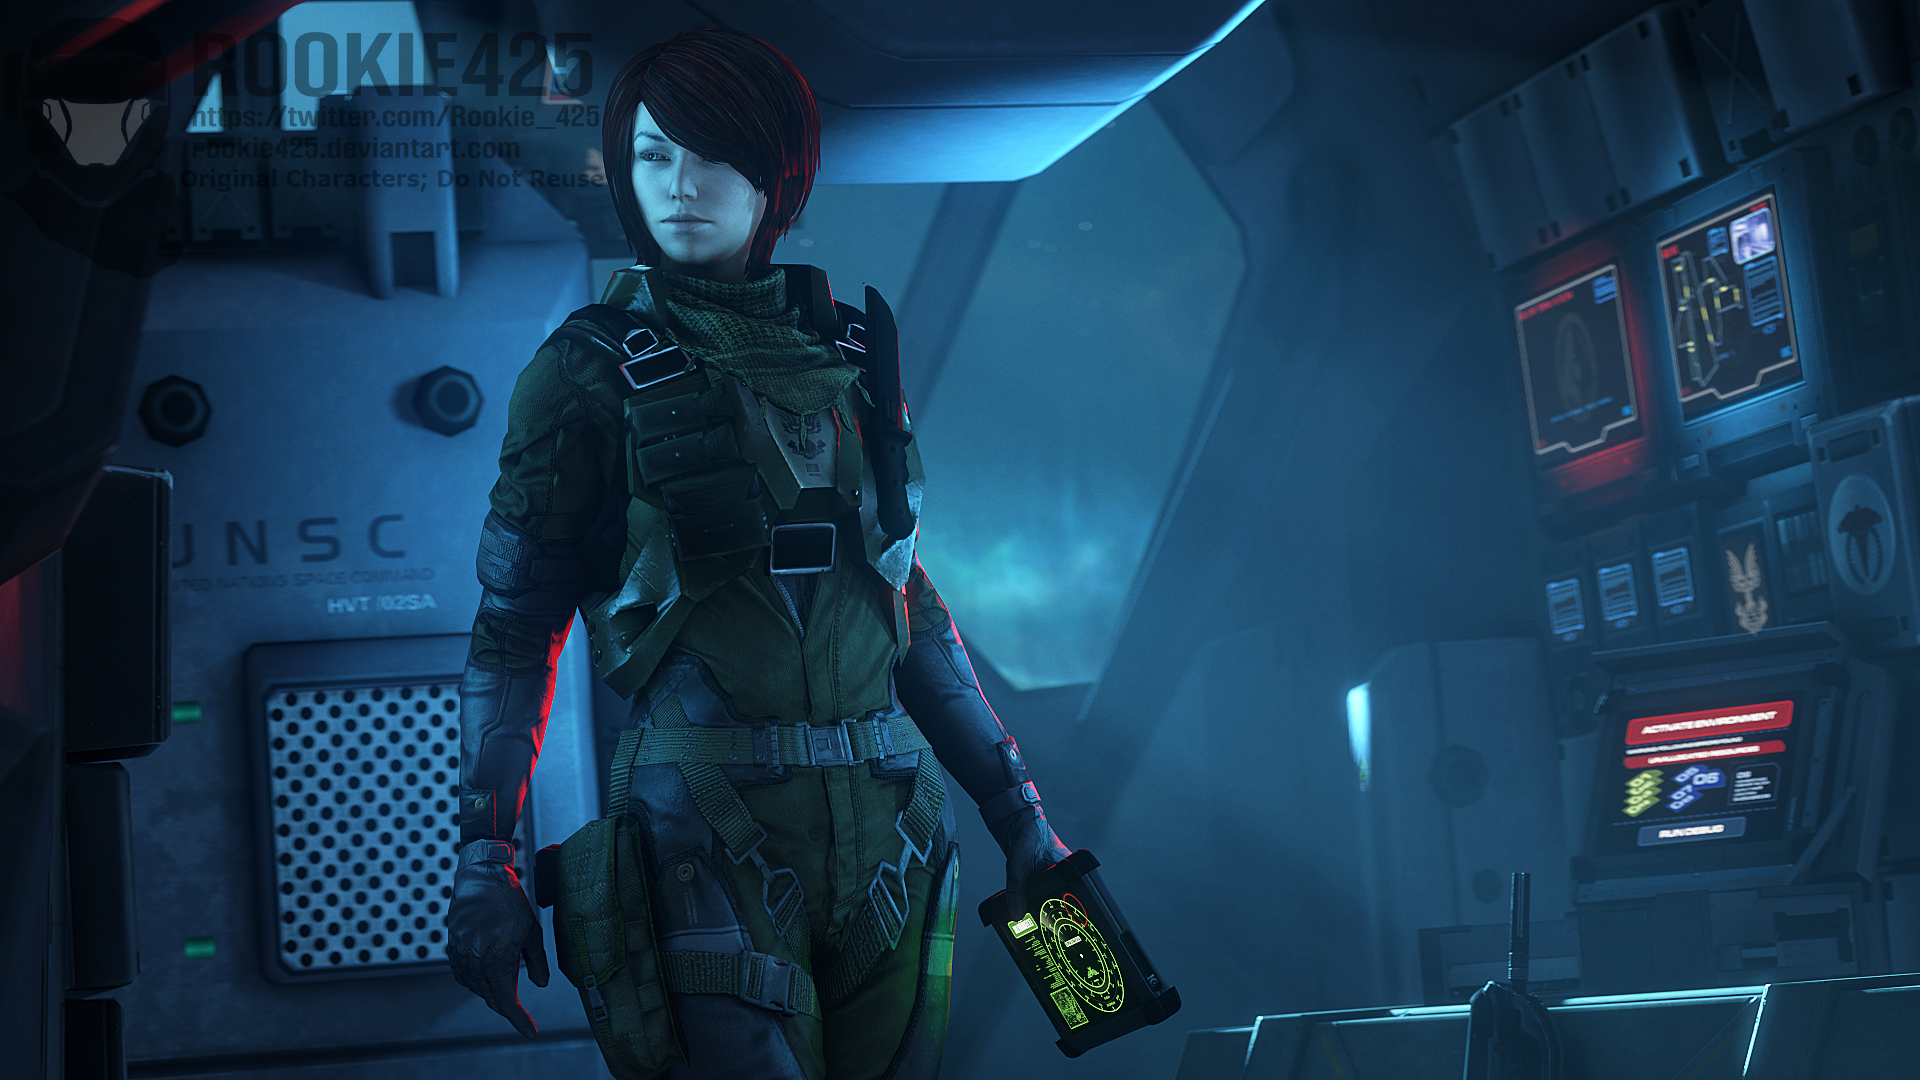 rachel_pre_flight_reshootwater_by_rookie425_ddb5uki.png